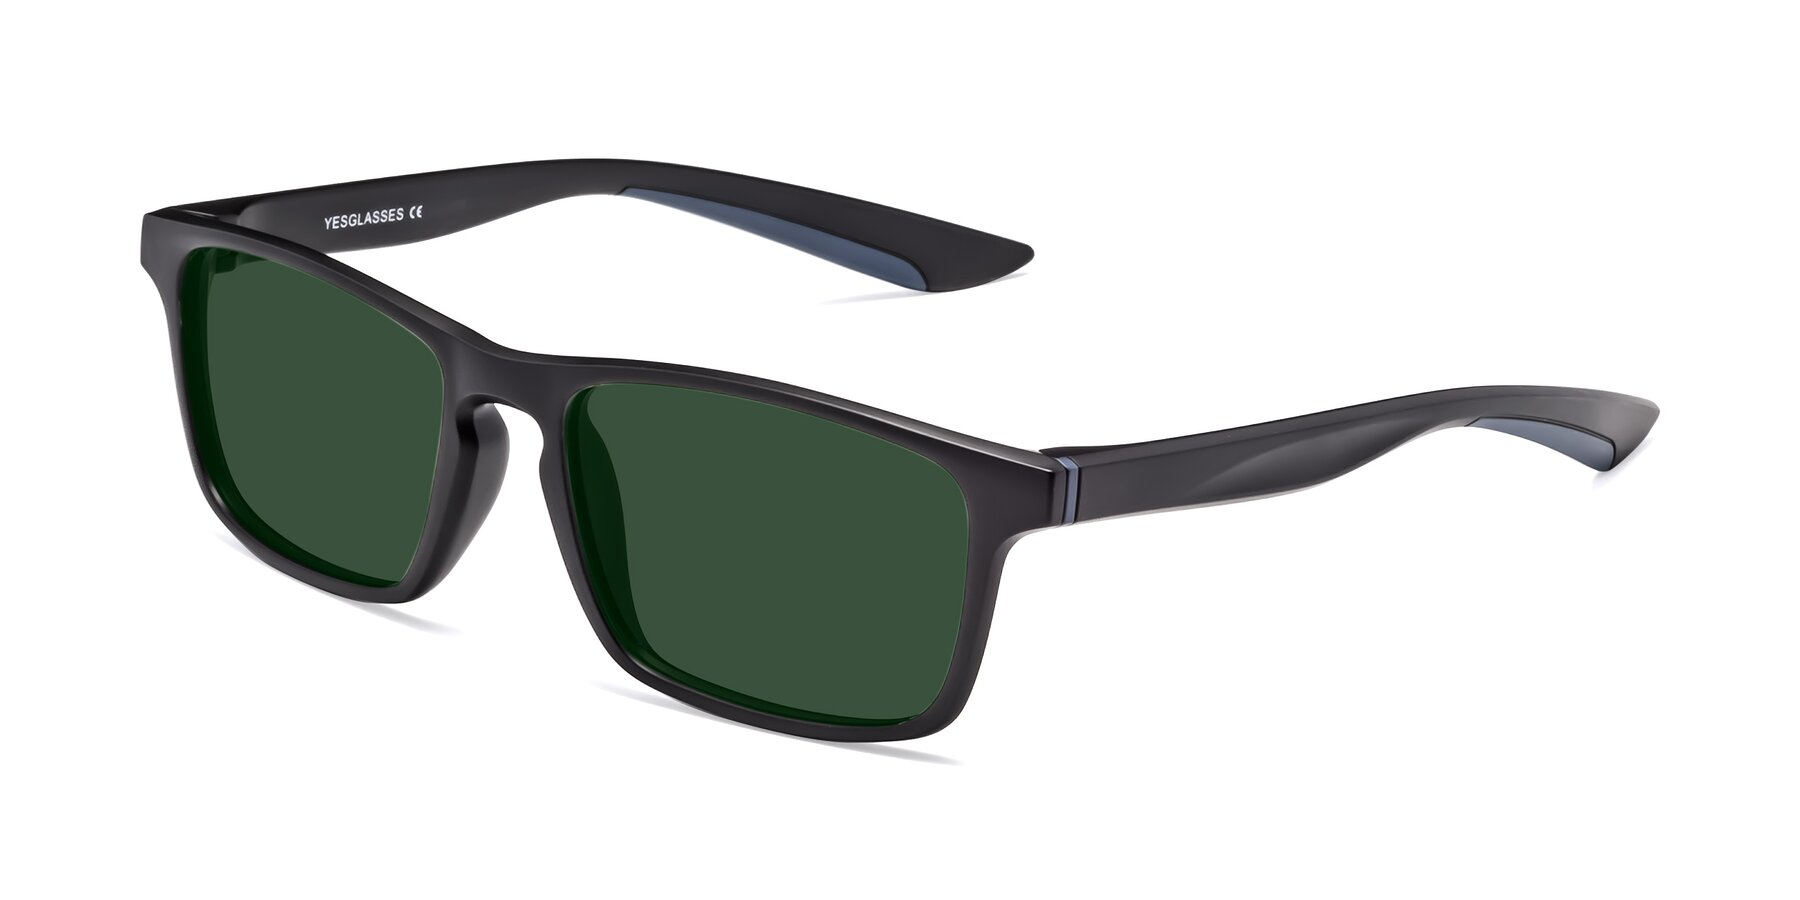 Angle of Passion in Matte Black-Blue with Green Tinted Lenses